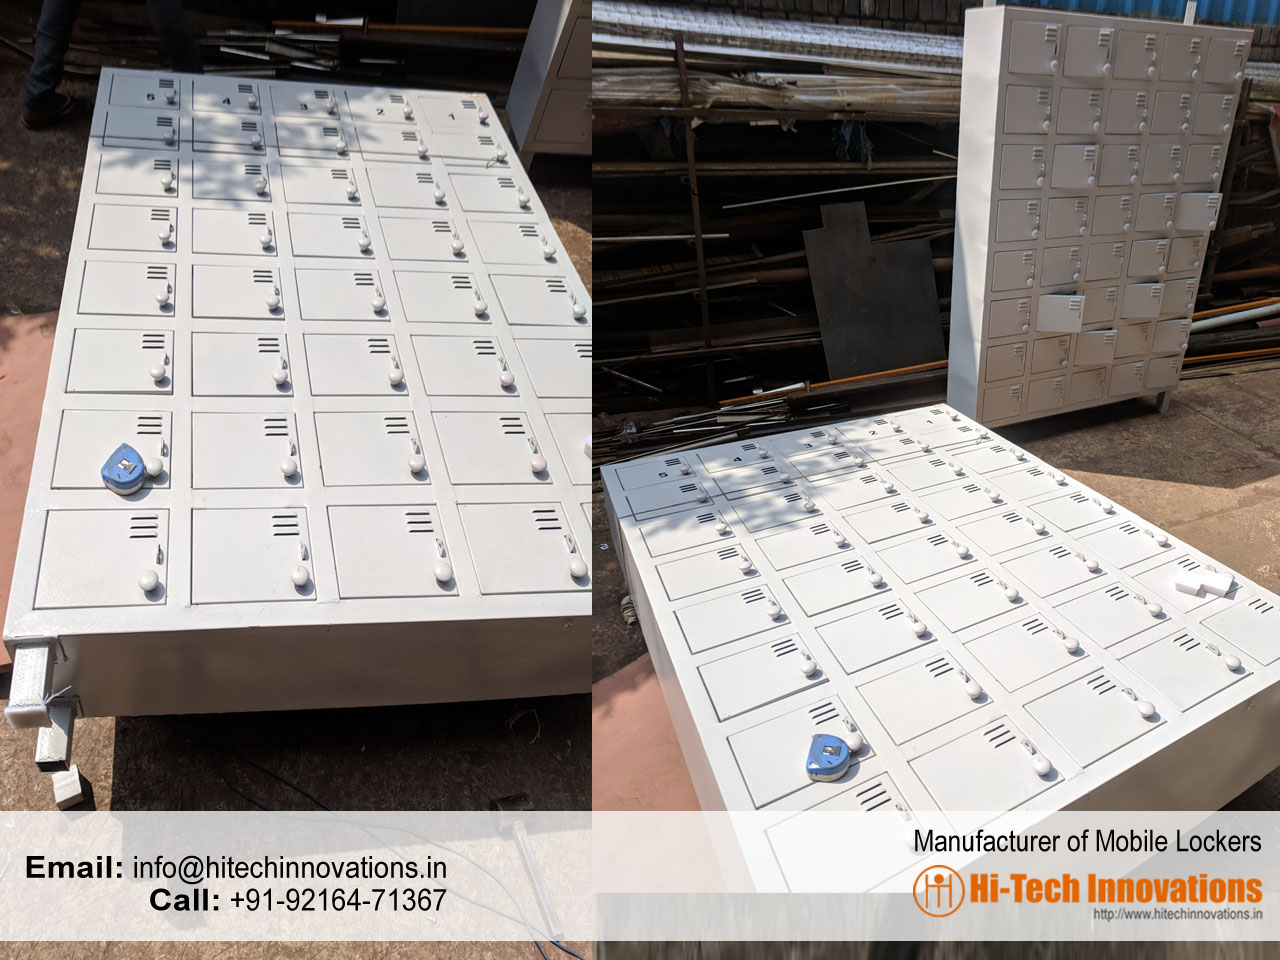 Manufacturers of Mobile Lockers